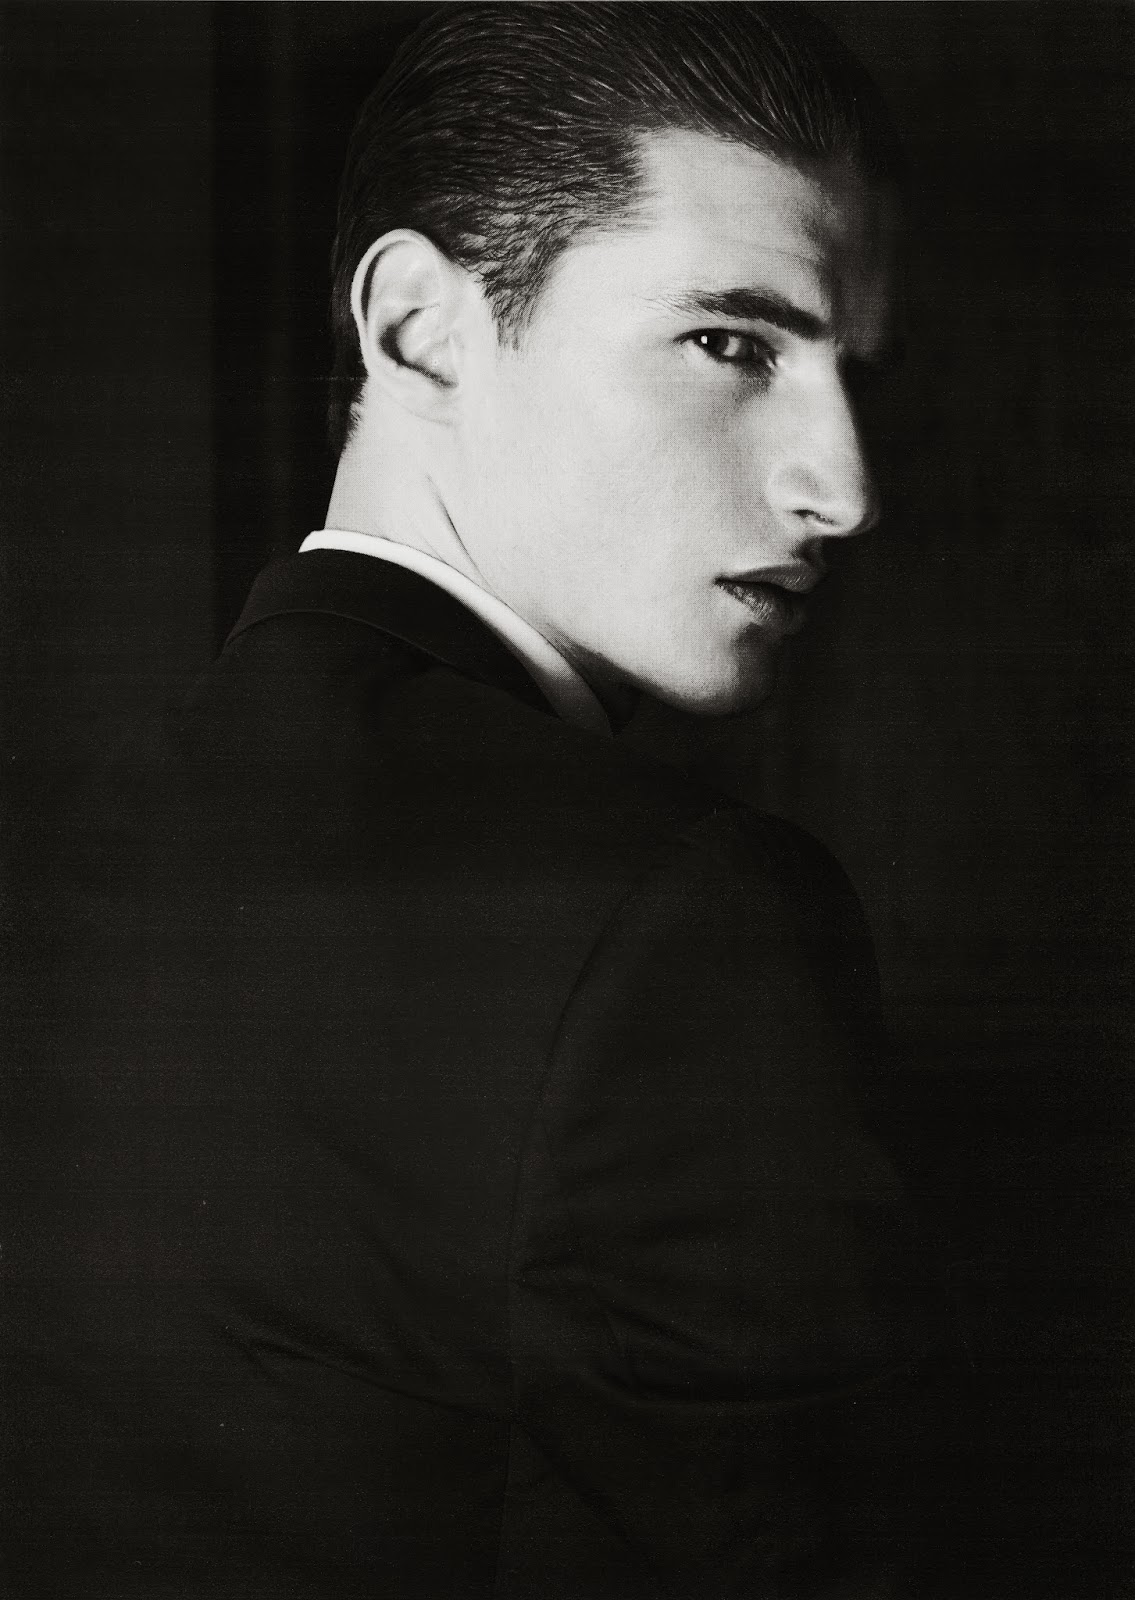 TINO T. (MAJOR MODELS) para The Suits by Philippe Vogelenzang 3 TINO T. (MAJOR MODELS) para The Suits by Philippe Vogelenzang